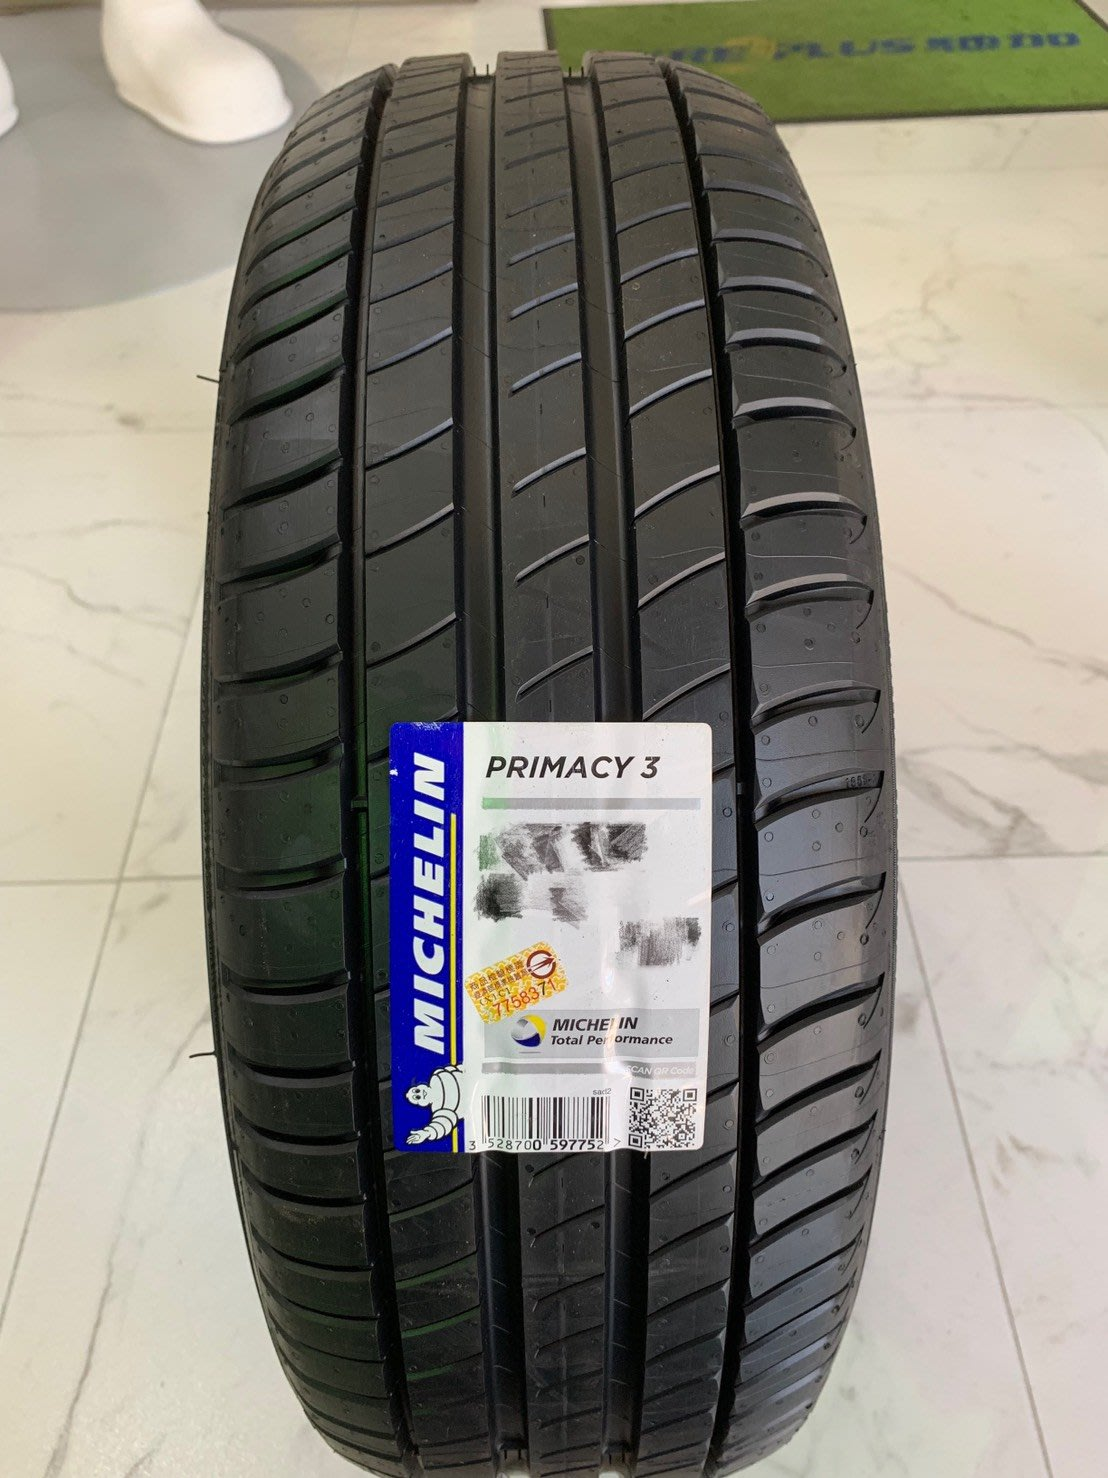 CR輪業 全新 米其林 MICHELIN PRIMACY 3 185/55/16 完工價:3400